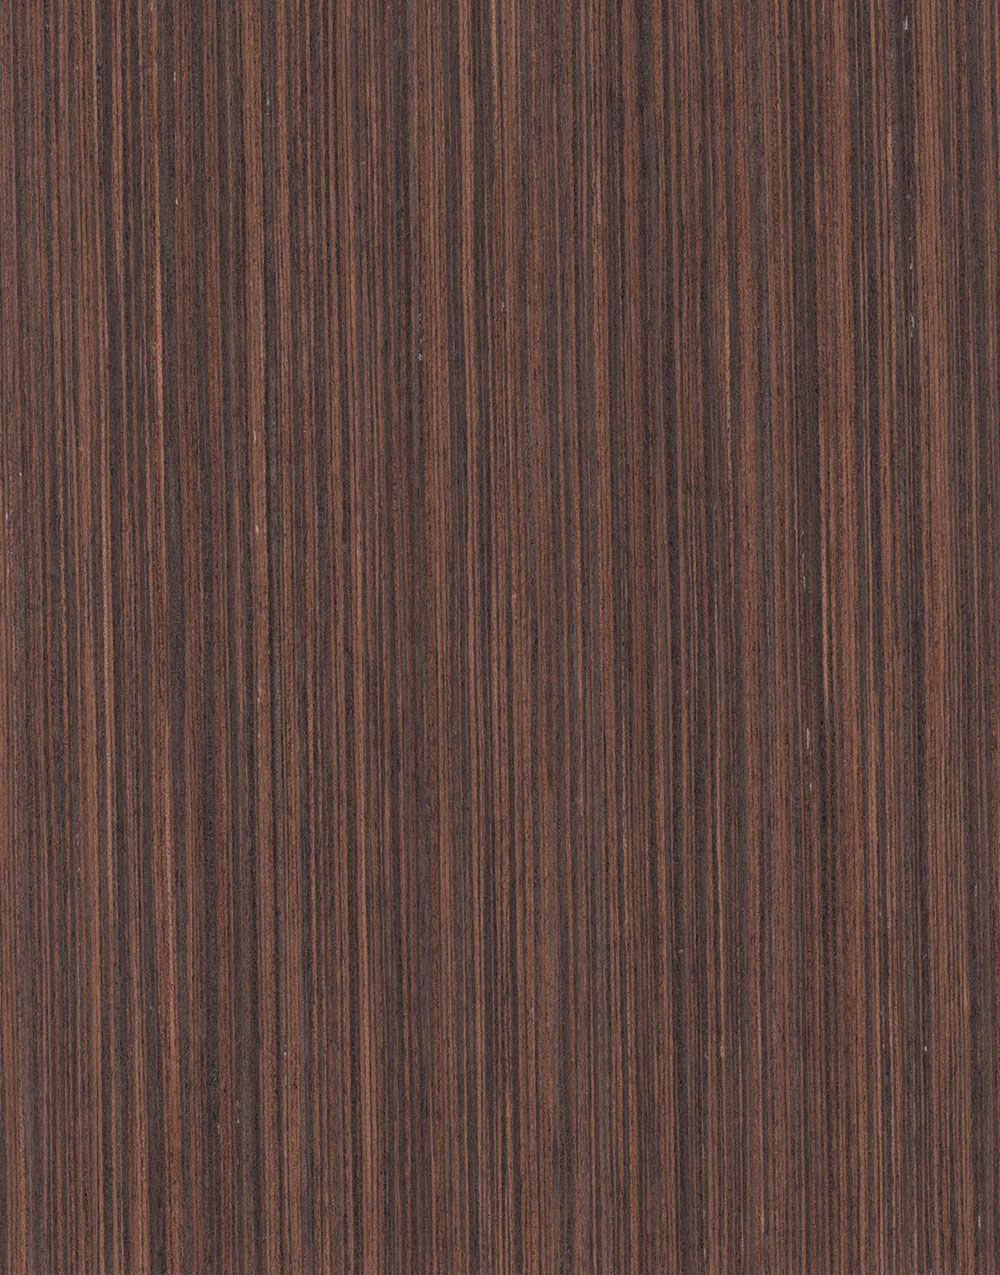 Natural Teak Veneers Teak Panello Wood texture